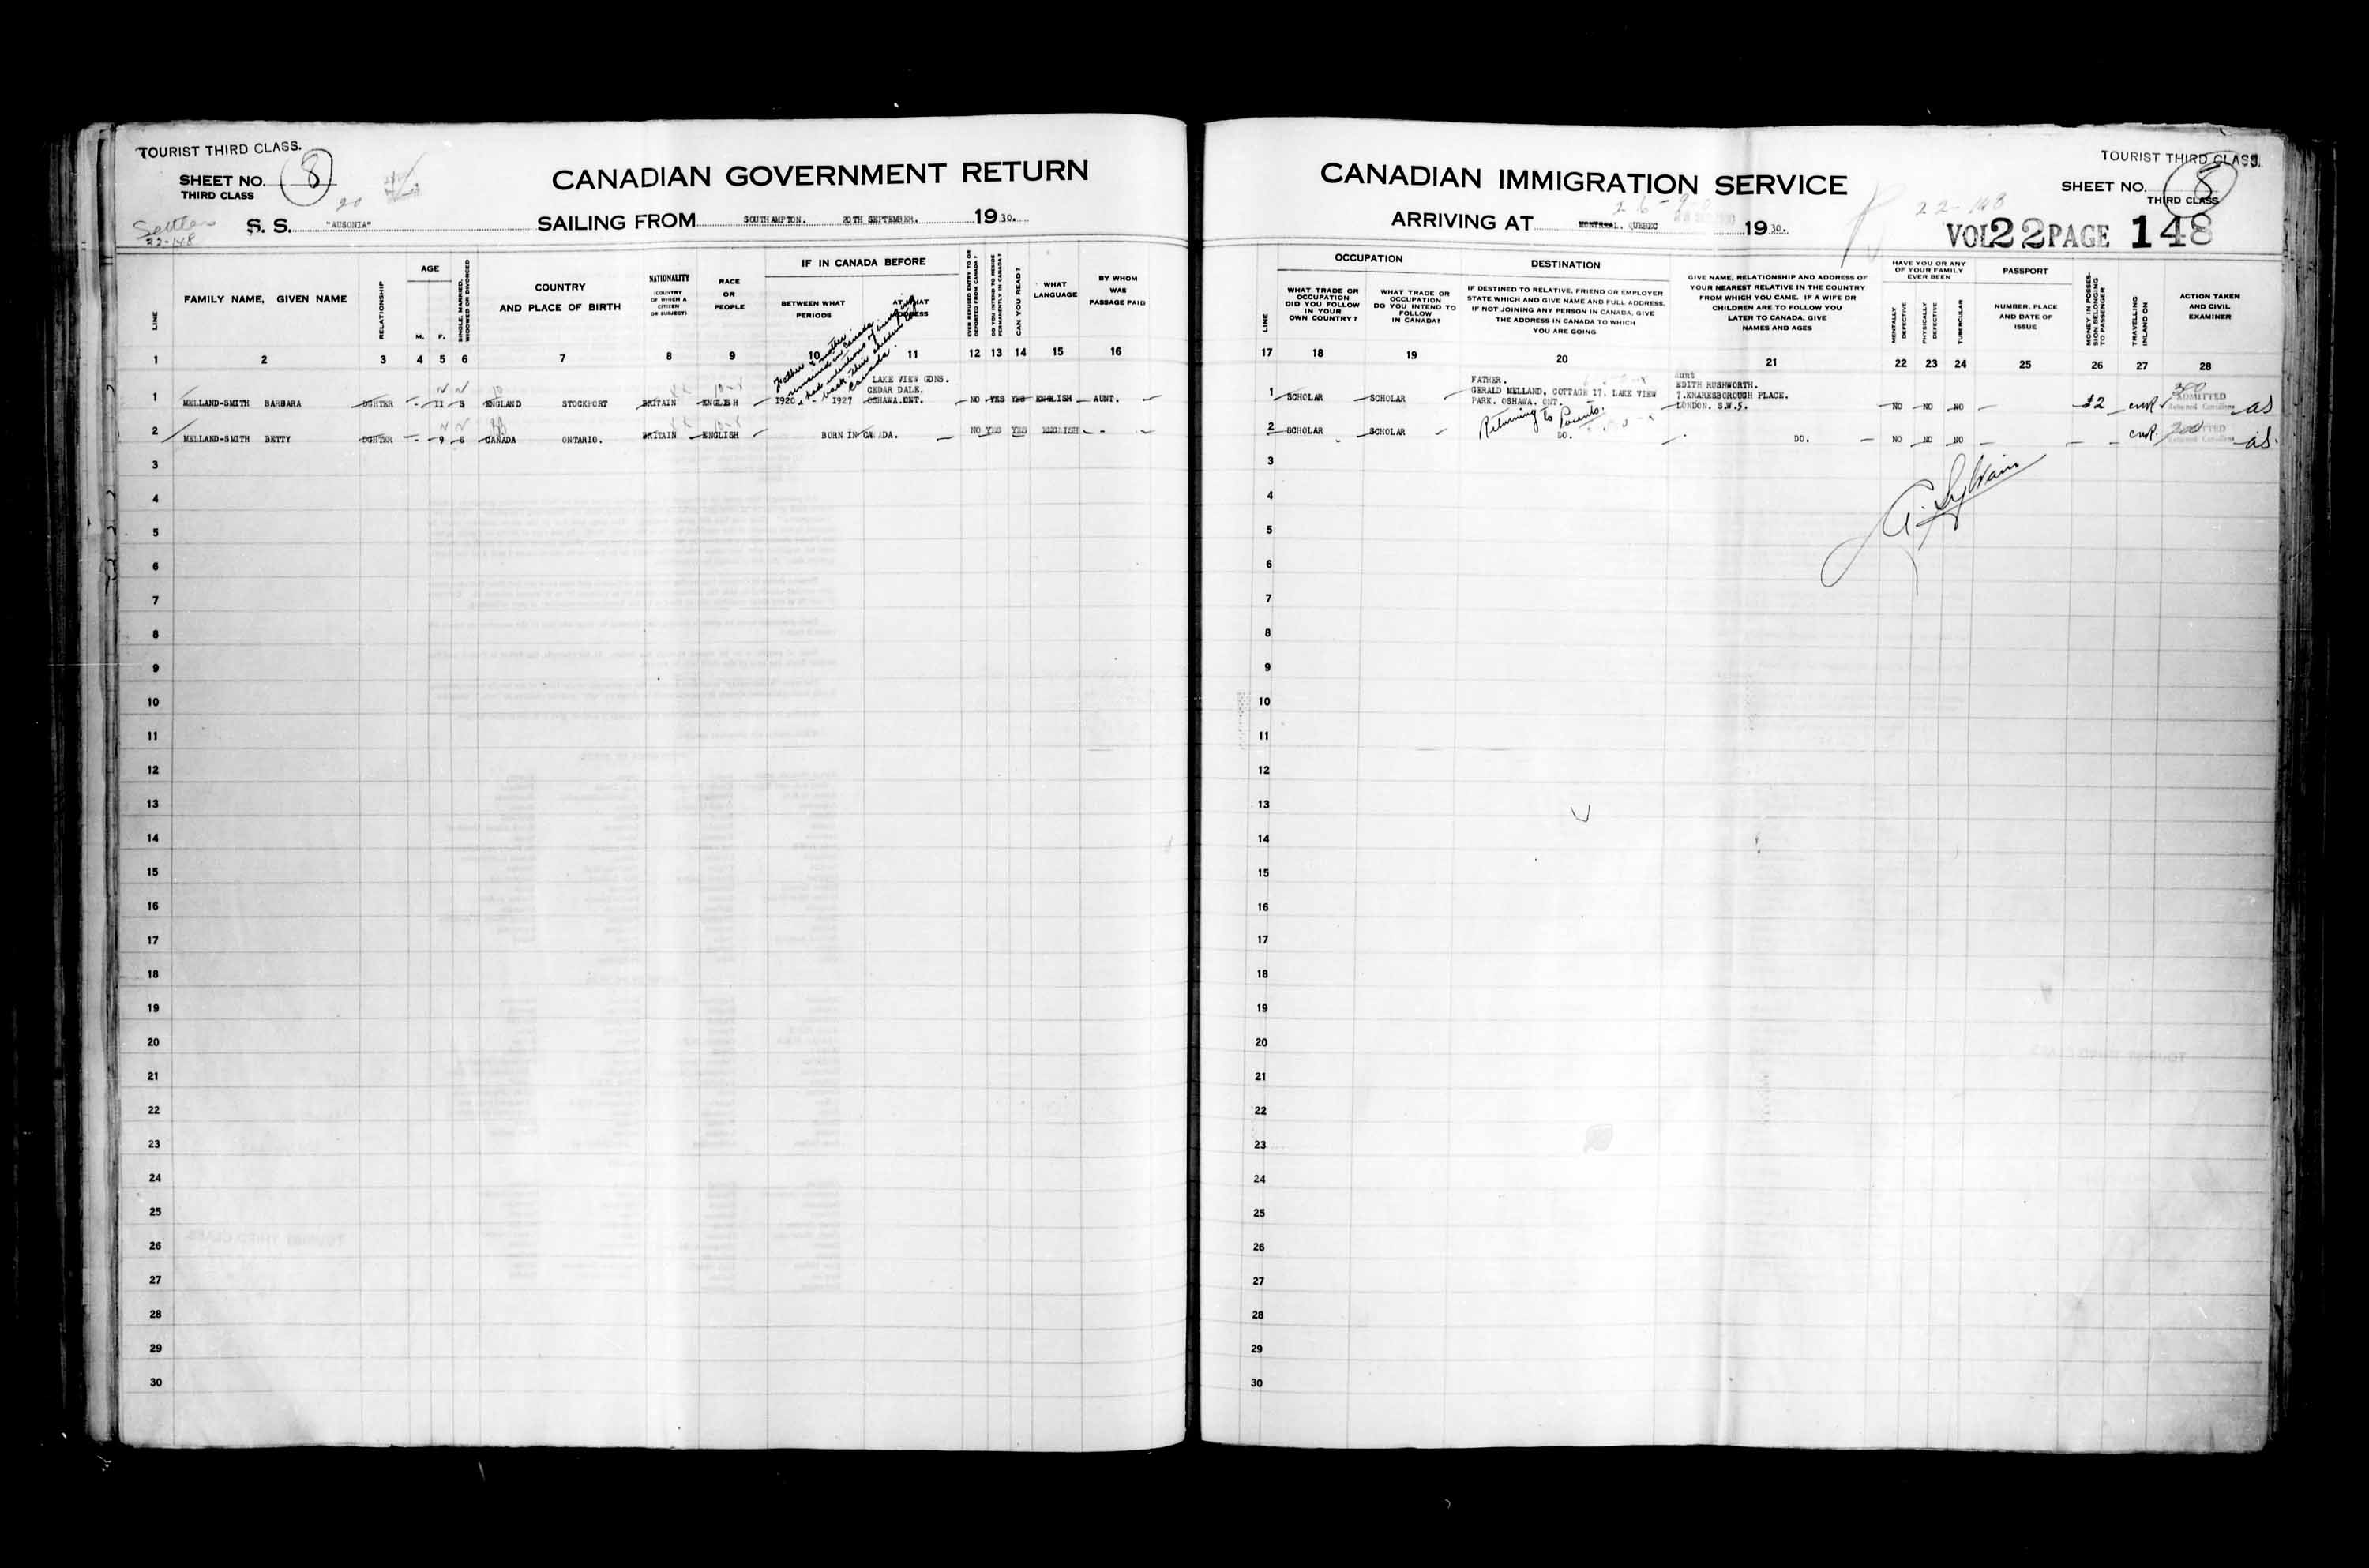 Title: Passenger Lists: Quebec City (1925-1935) - Mikan Number: 134839 - Microform: t-14770